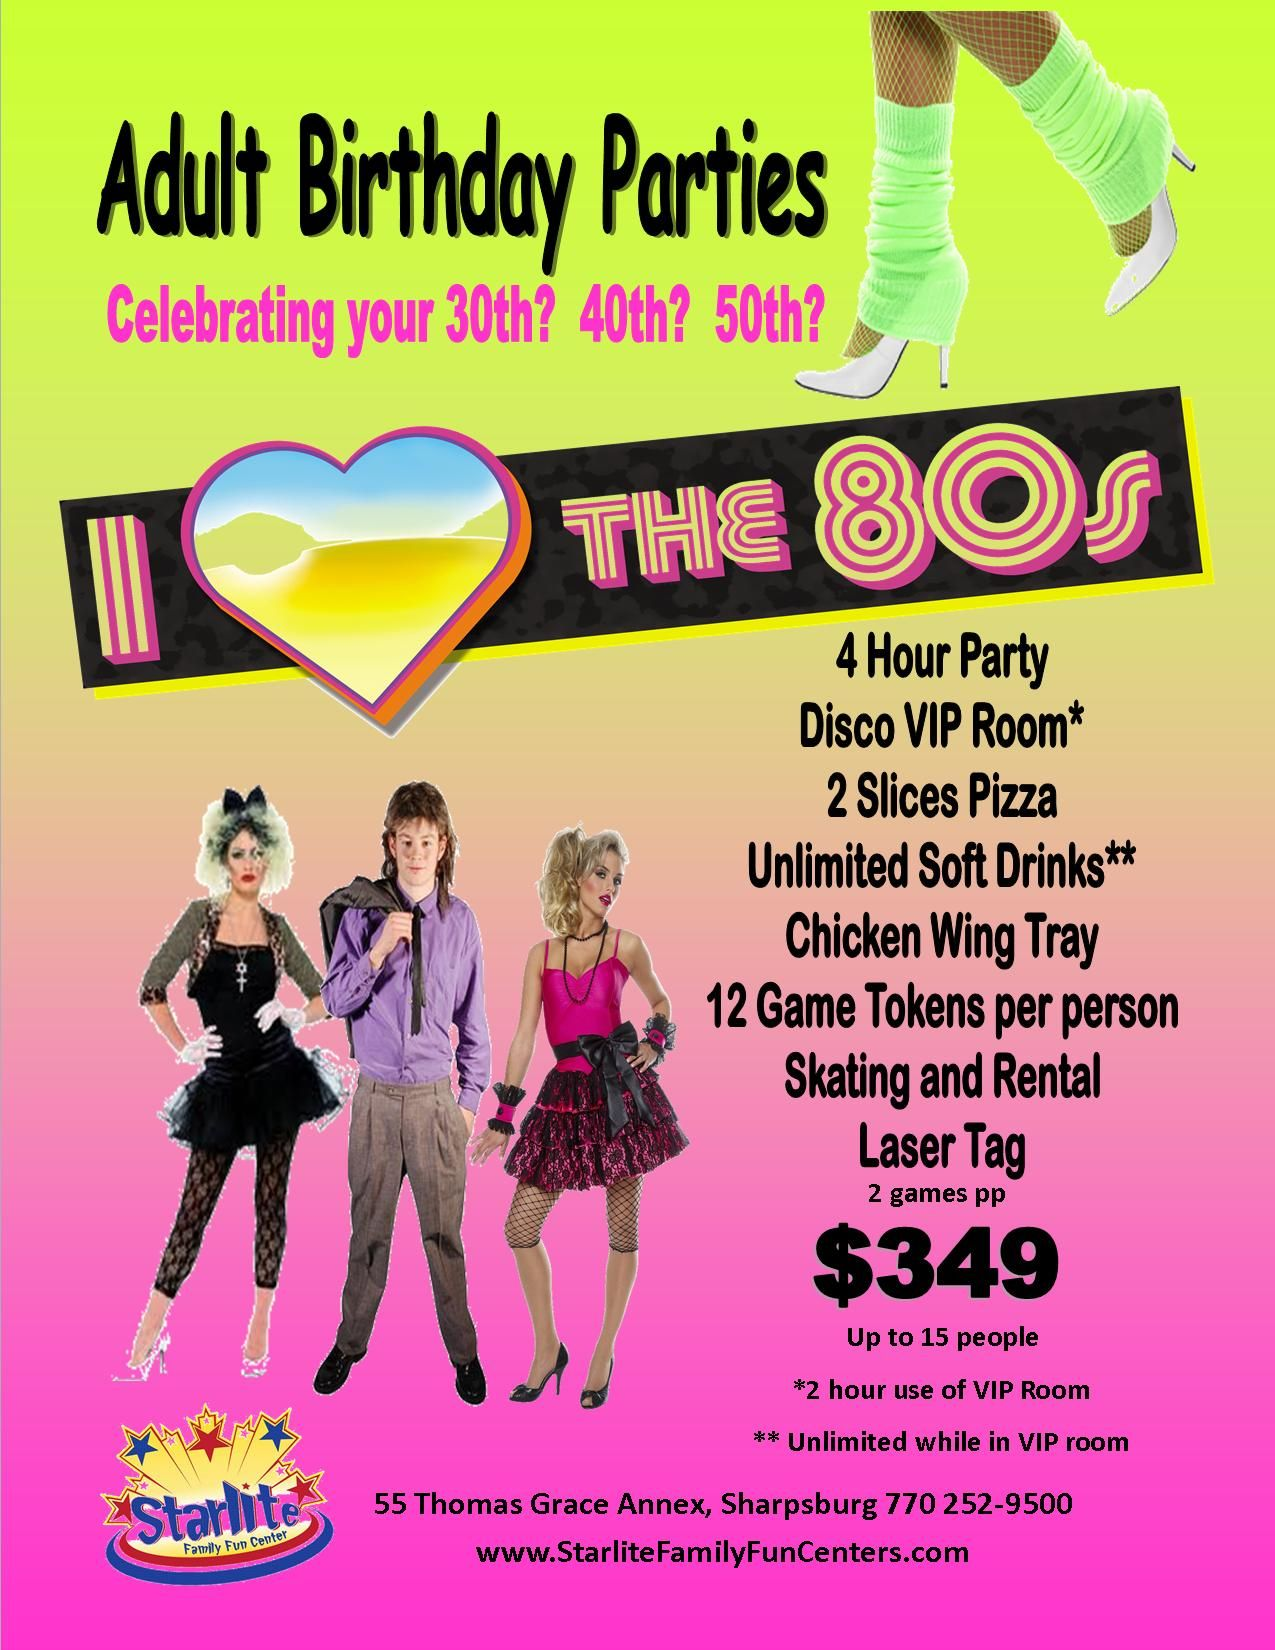 80s Themed Birthday Party Ideas